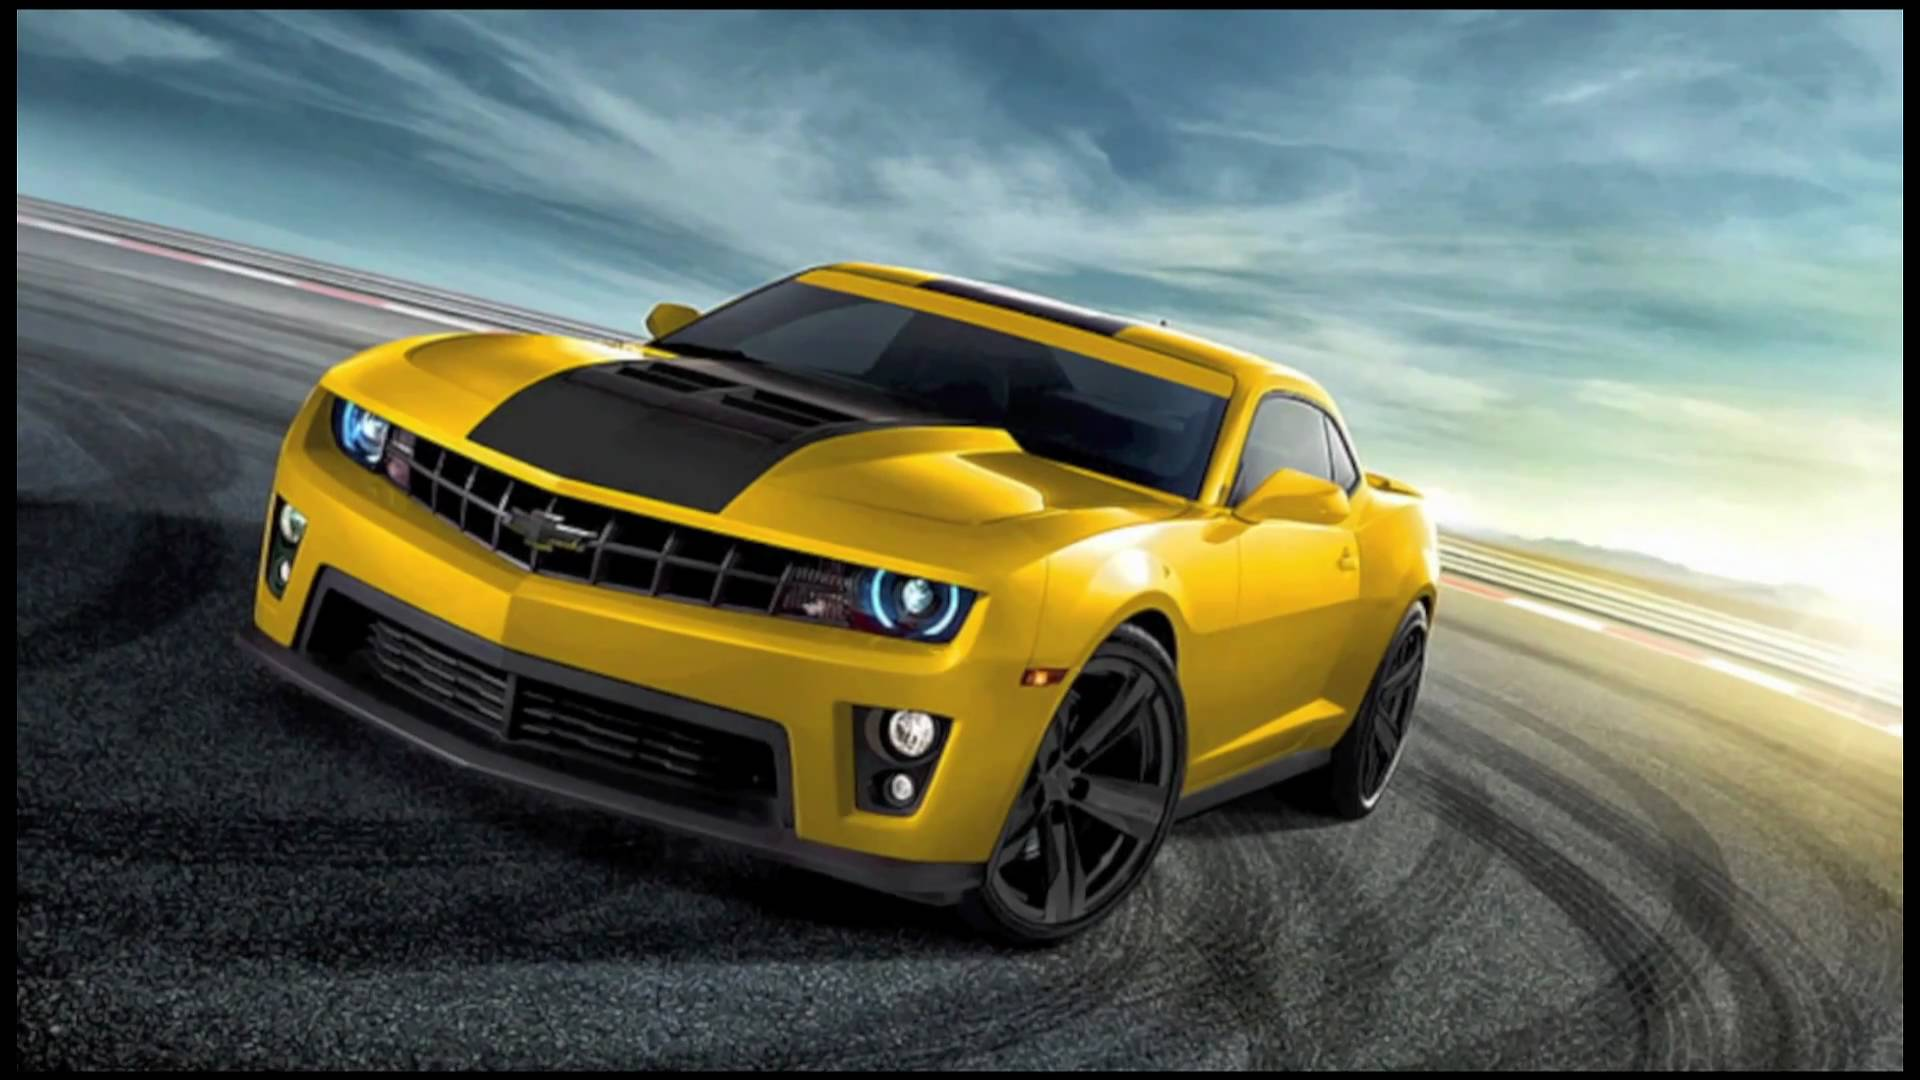 2012 Chevy Camaro ZL1 In Various Colors 1920x1080